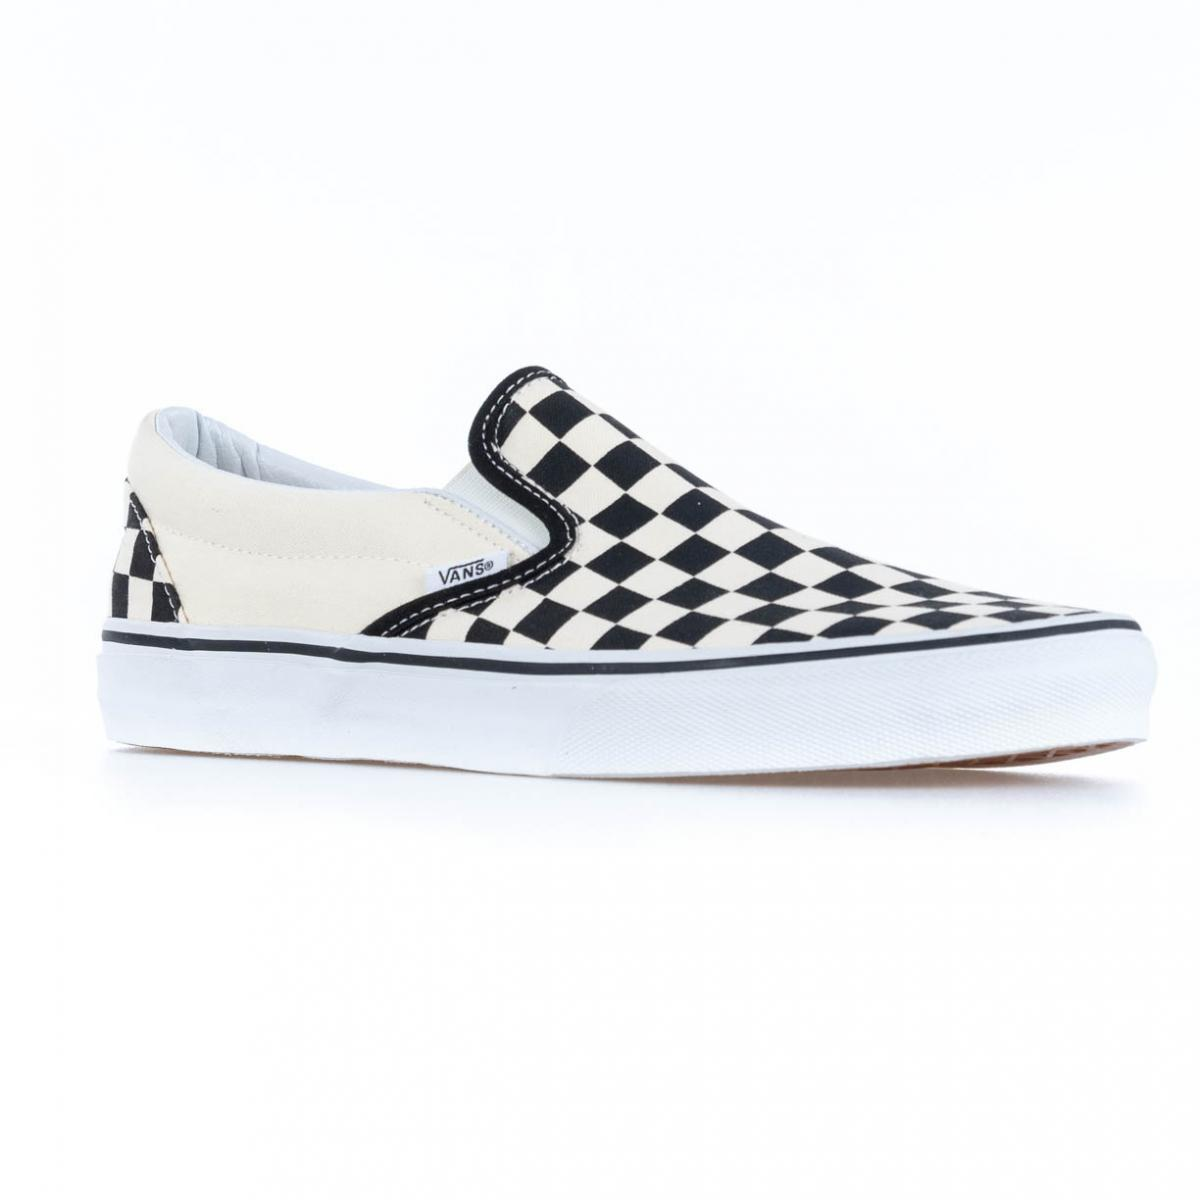 SCARPA UOMO VANS CLASSIC SLIP-ON VN-0 EYEBWW BLACK AND WHITE